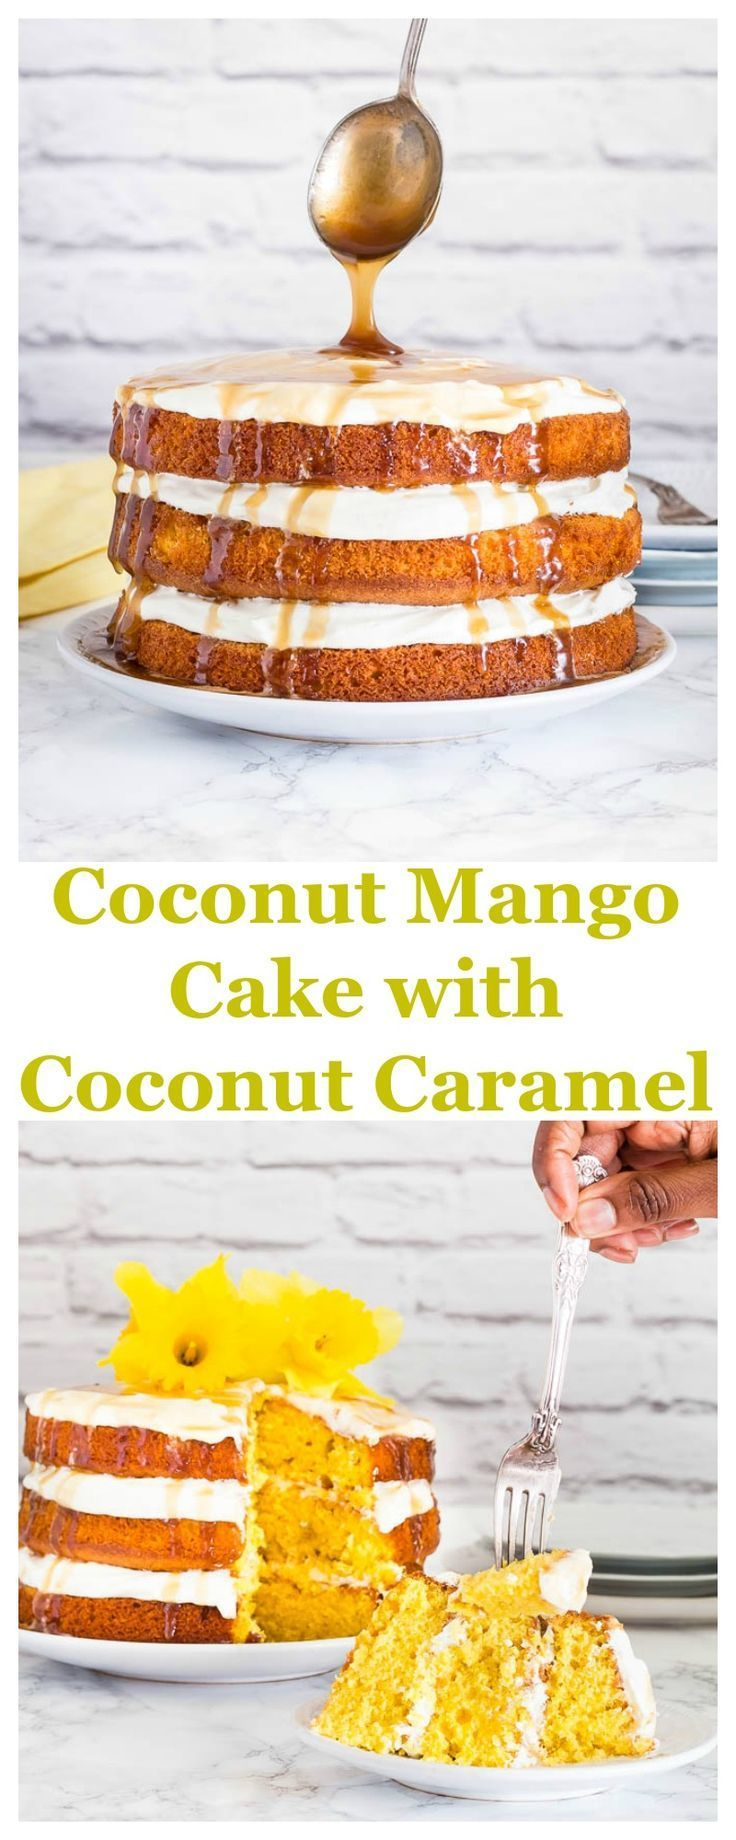 Coconut Mango Cake with Coconut Caramel Drizzle   Recipes From A Pantry